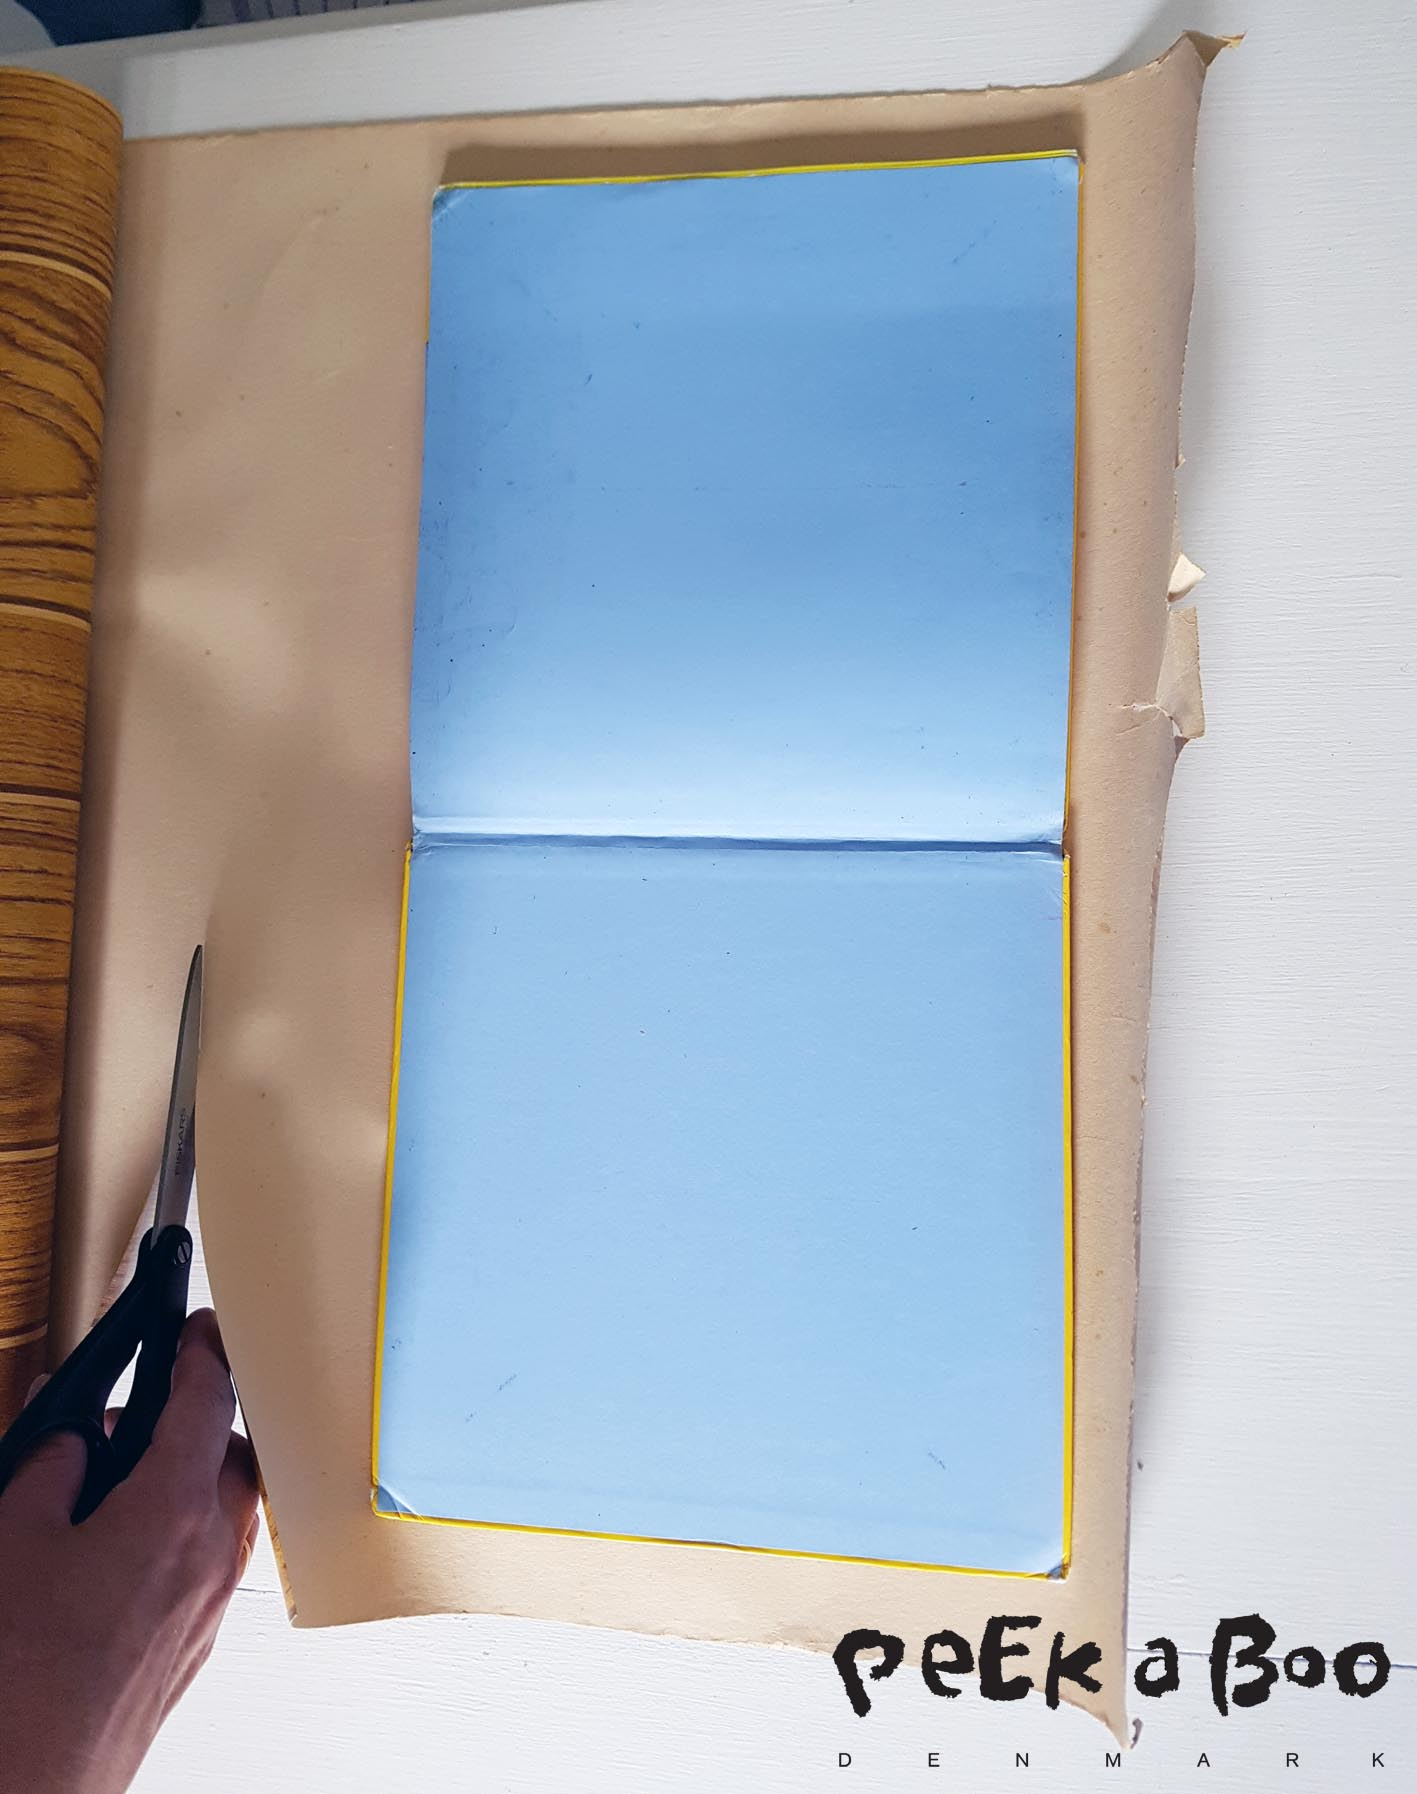 Start by placing your book open on the paper to measure the size of it. You have to make it app. 5-8 cm bigger on all sides.